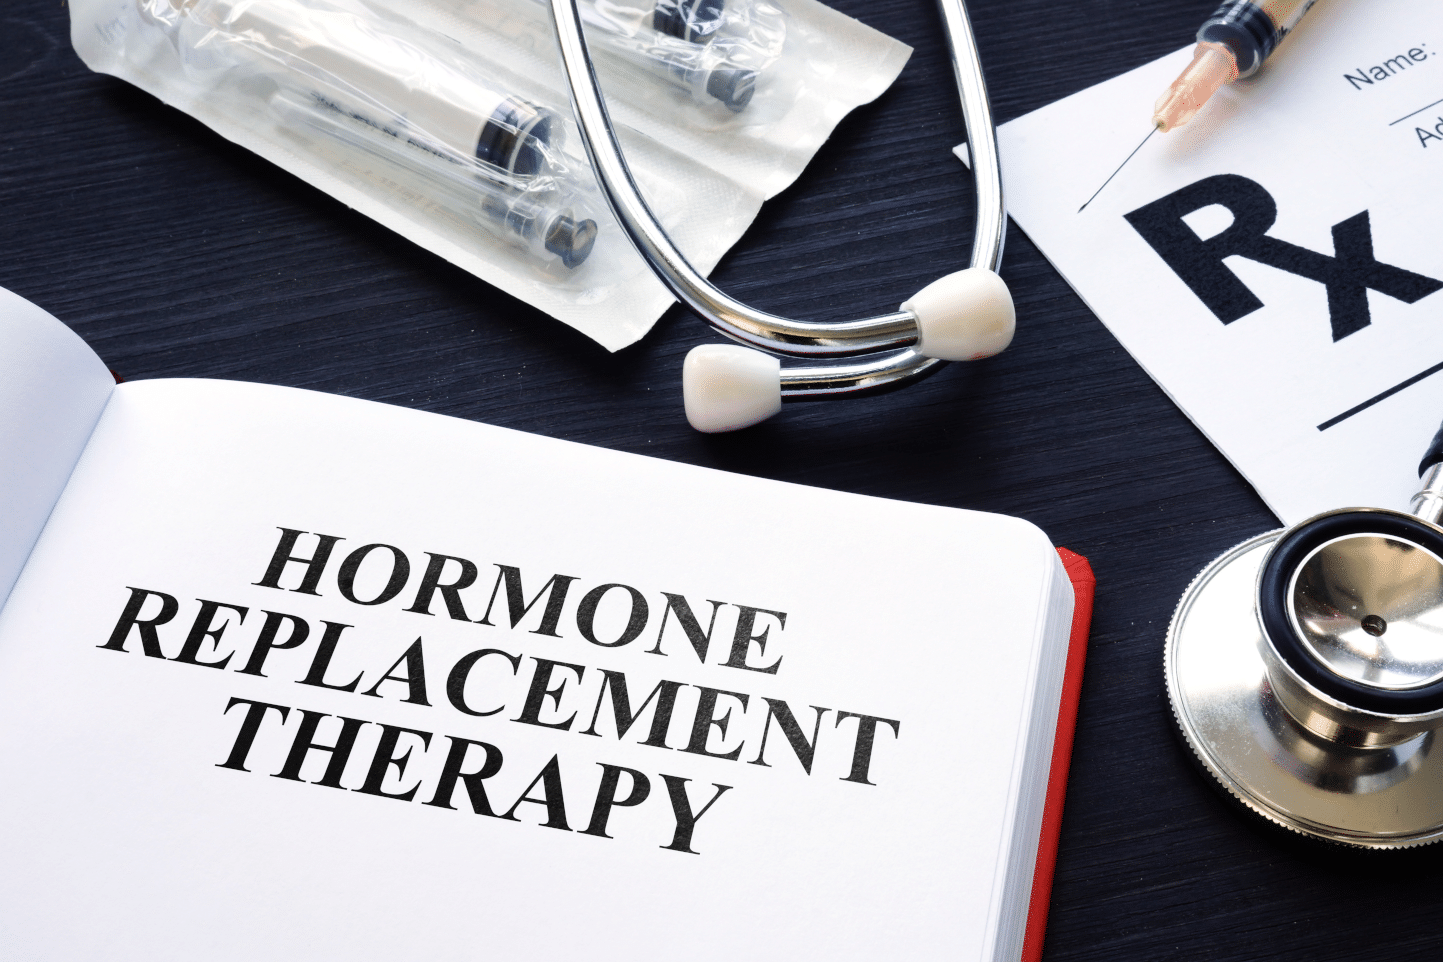 What You Need to Know About Hormone Replacement Therapy (HRT) in Menopause